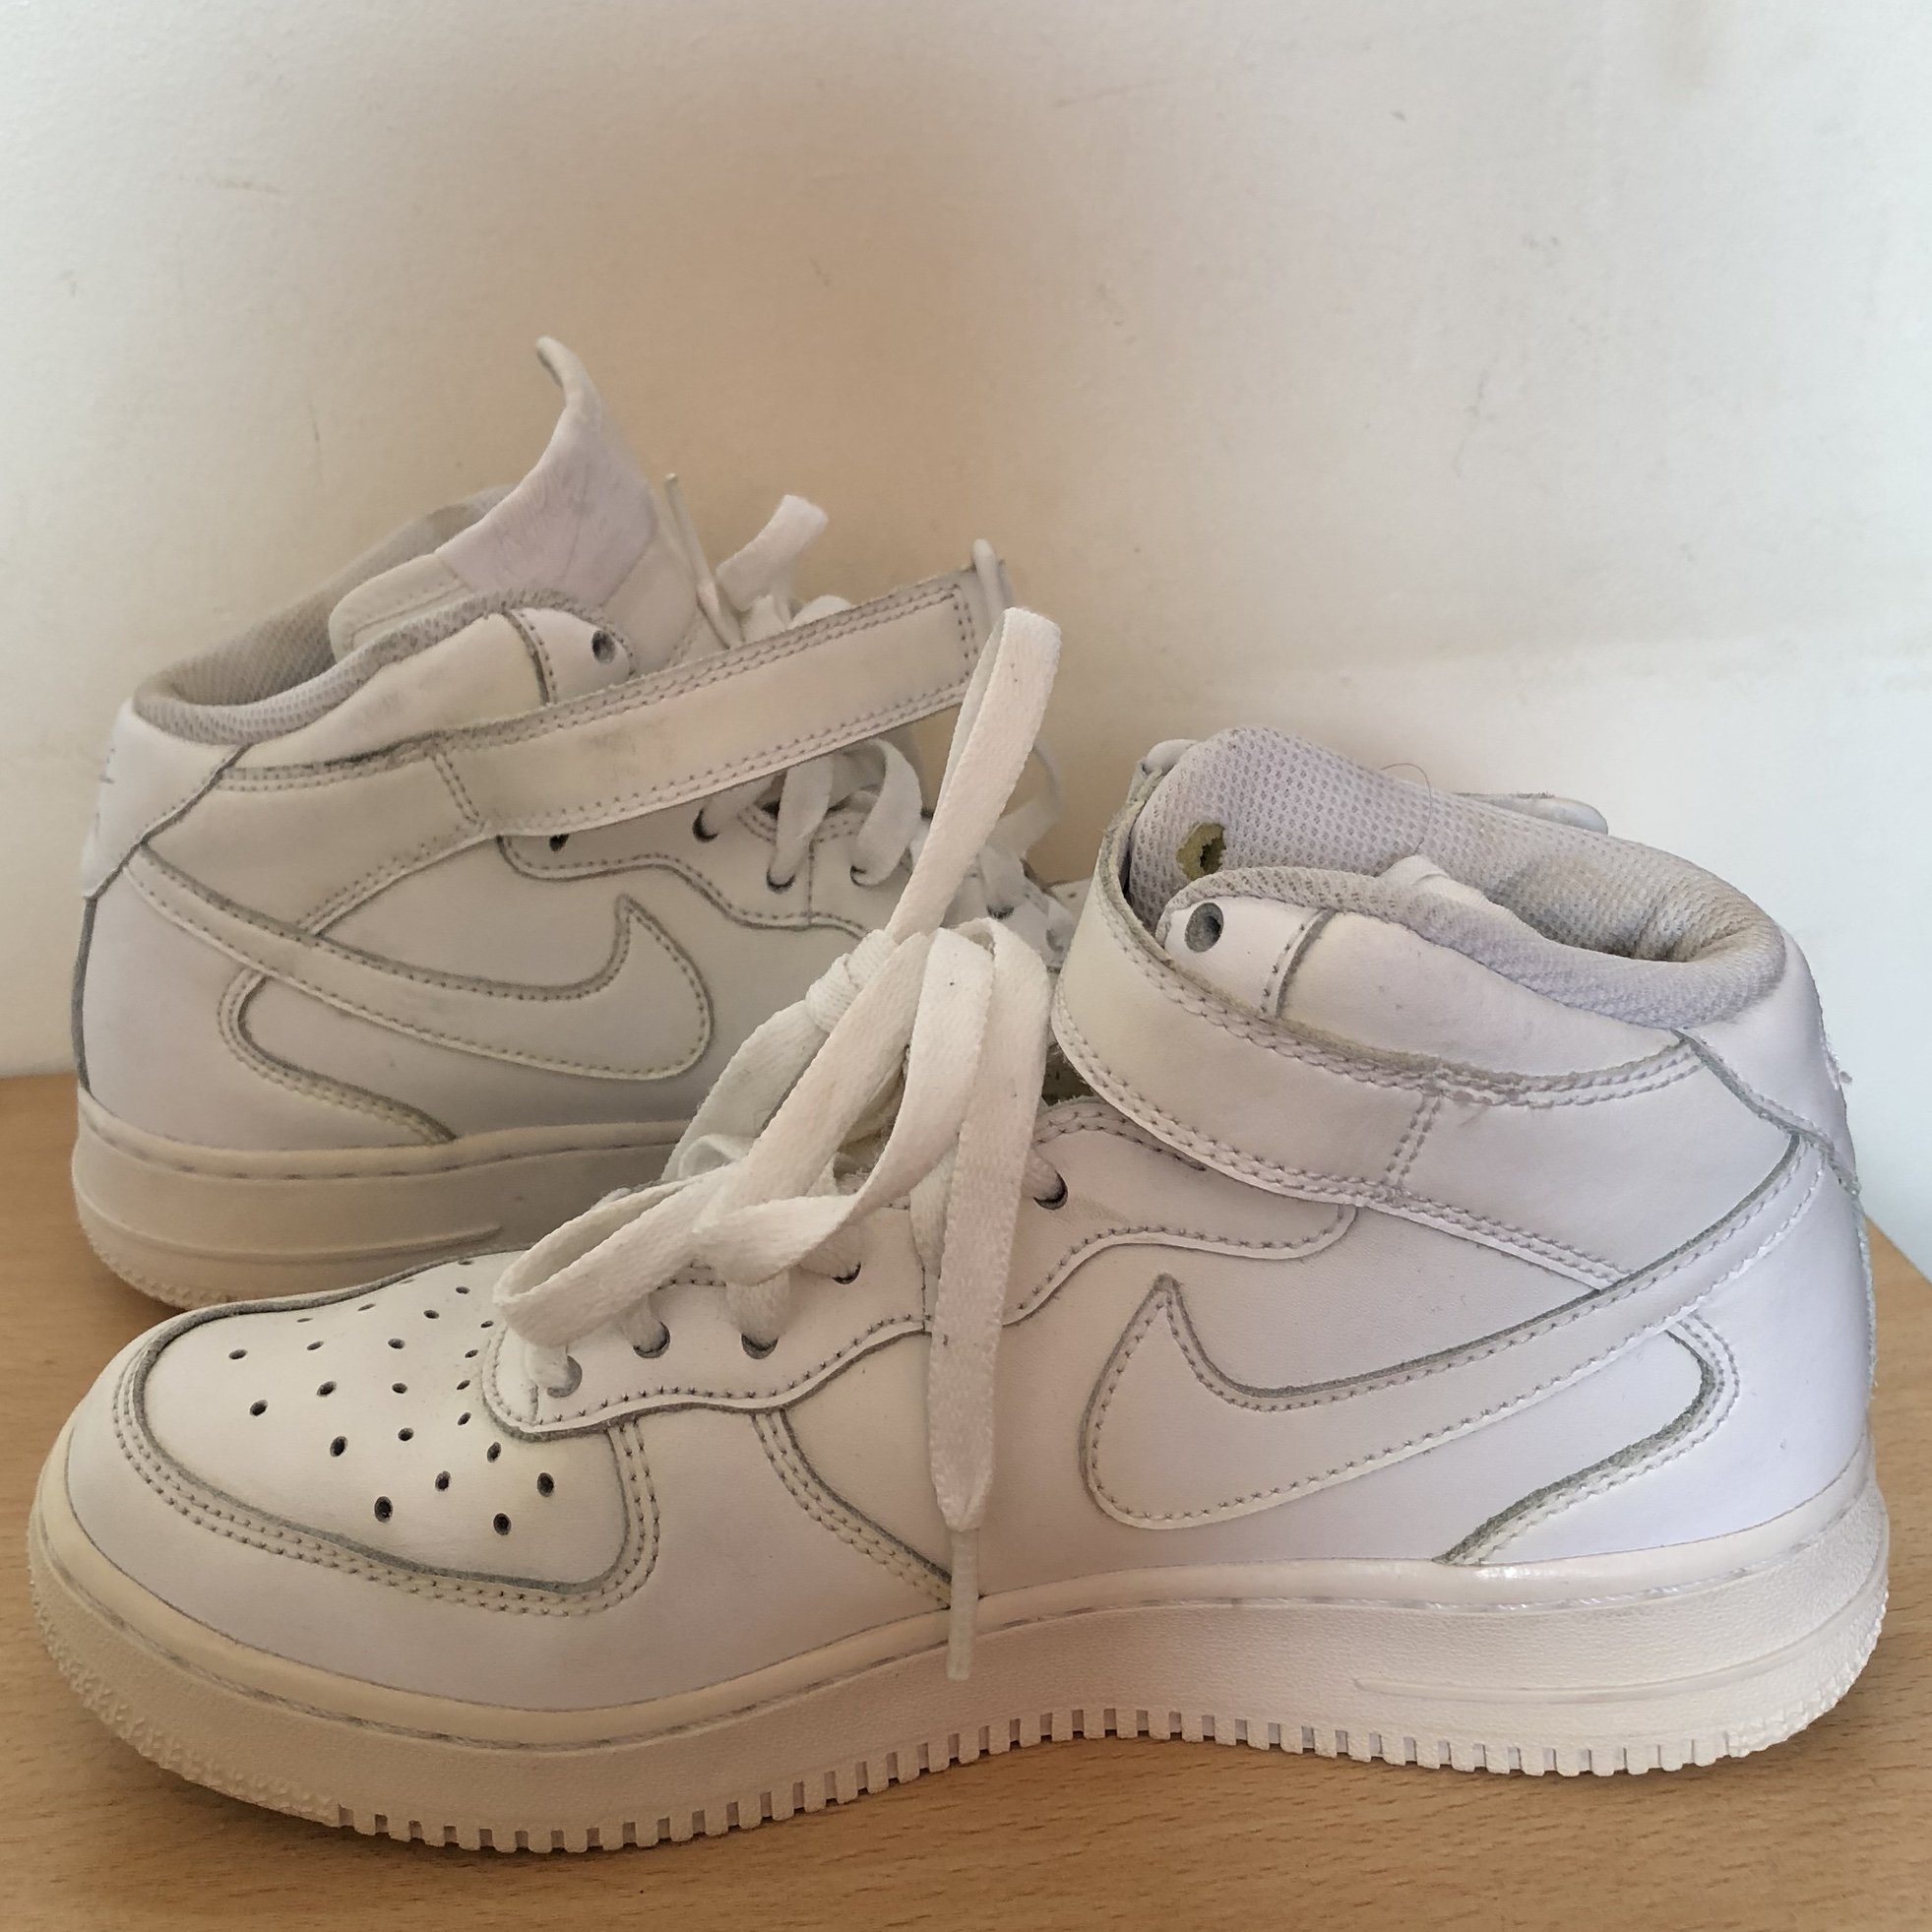 ORIGINAL NIKE AIR FORCE 1! they're the